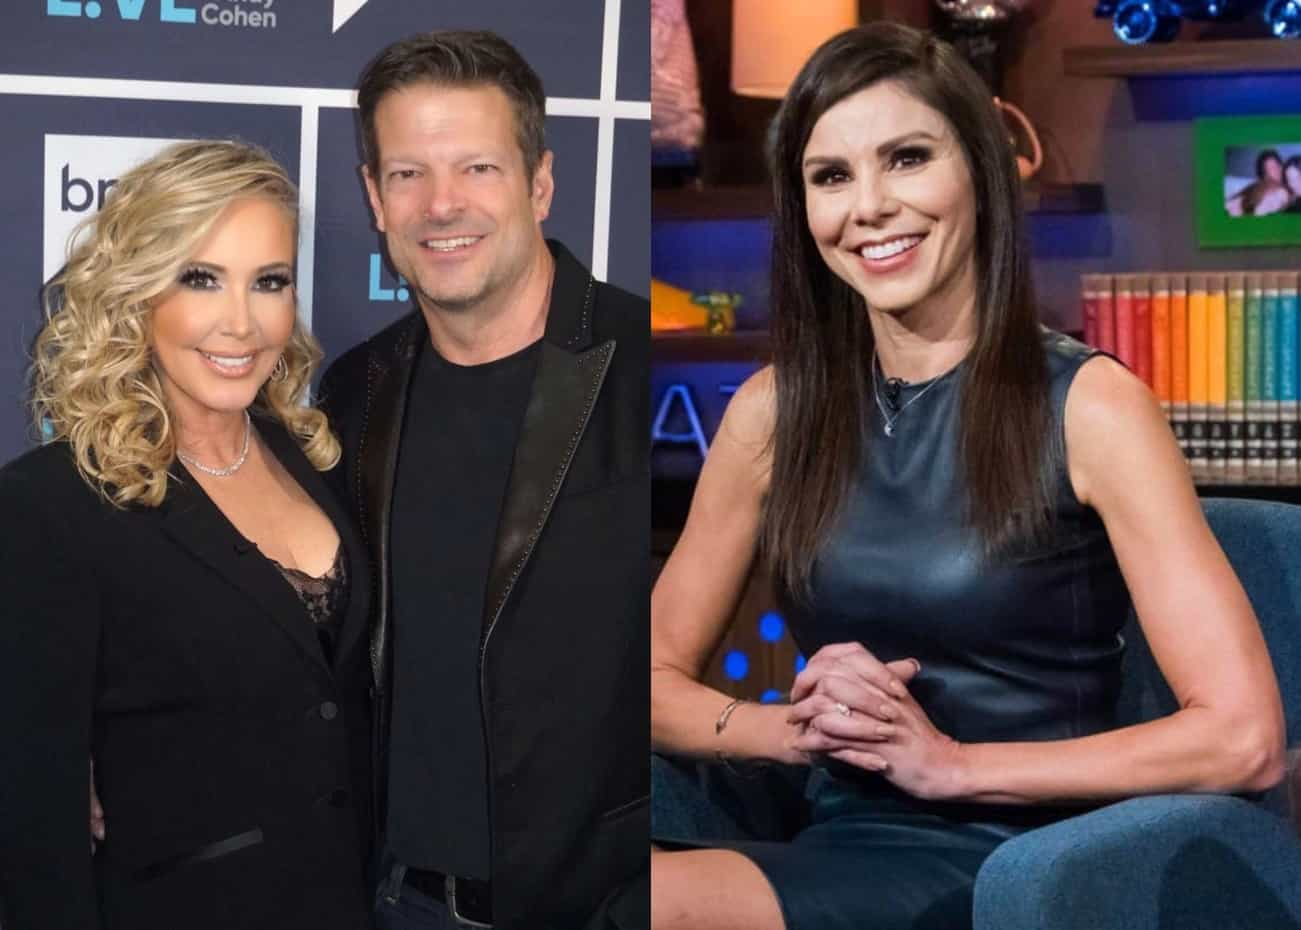 Shannon Beador's Boyfriend John Janssen Reacts to Rumors of an on-Camera Fight Between Shannon and Heather Dubrow Amid Filming on RHOC Season 16